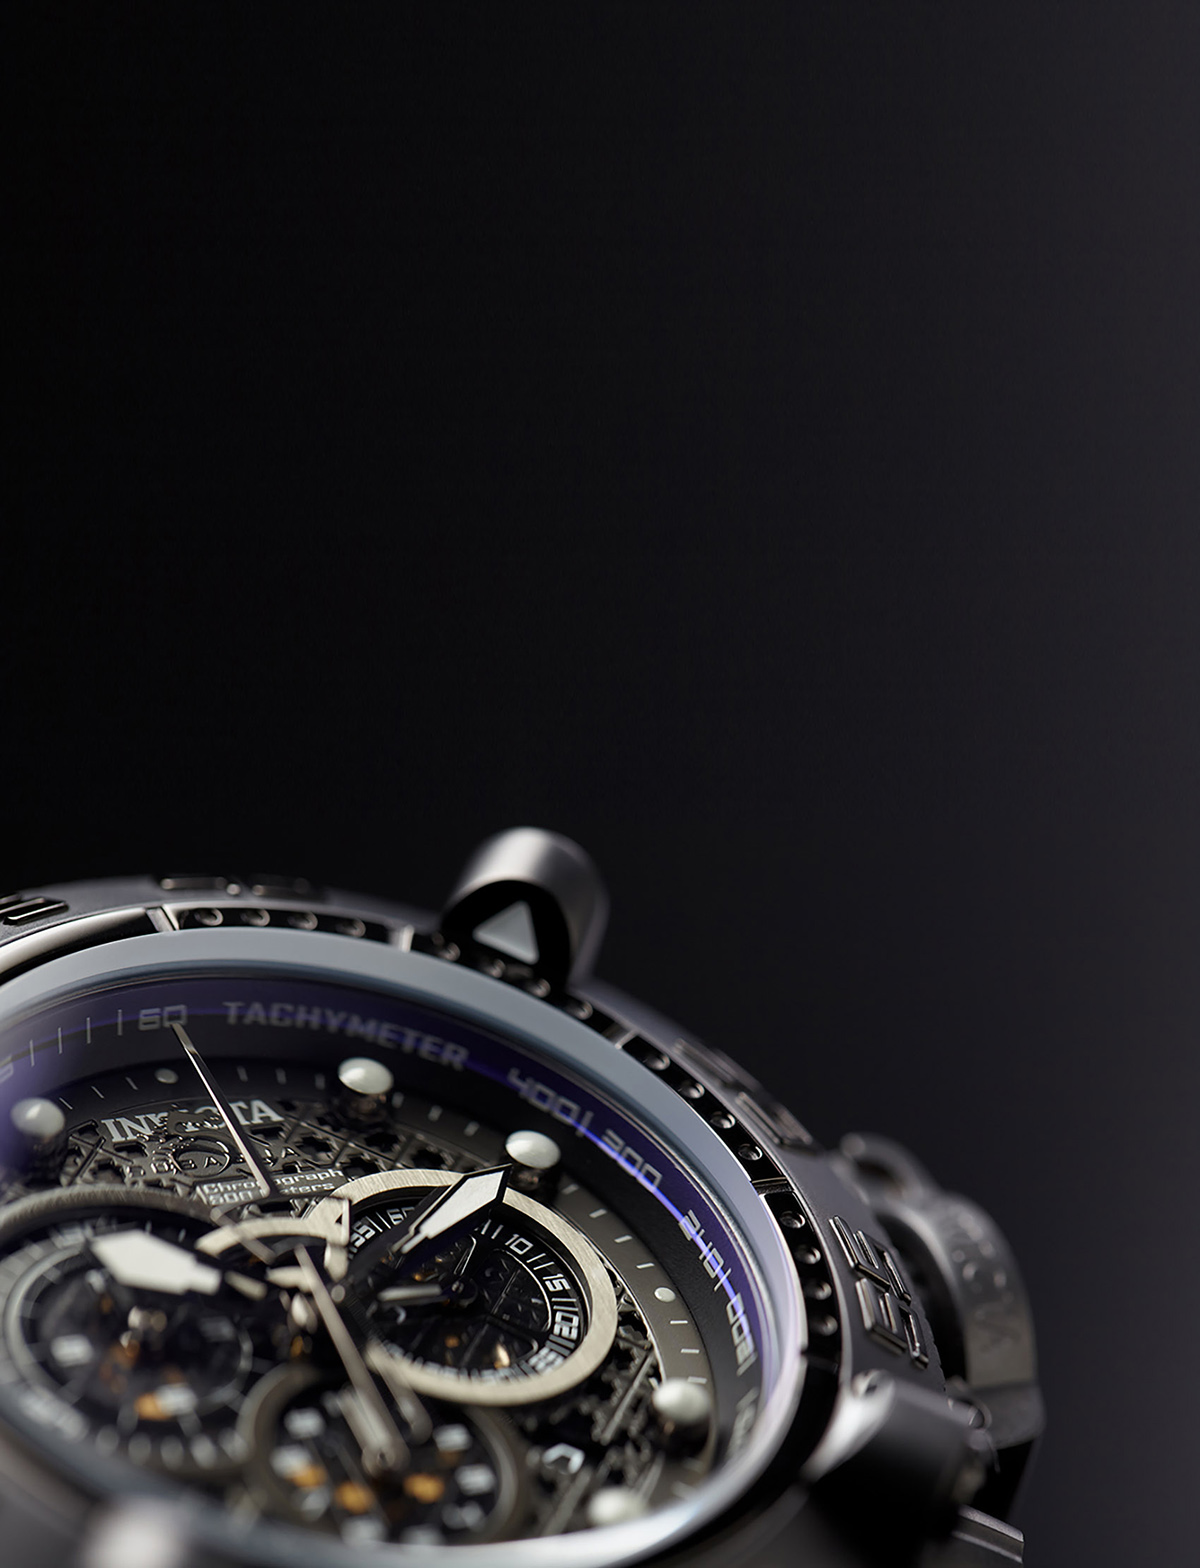 invicta watch detail close up from san jose top photo studio